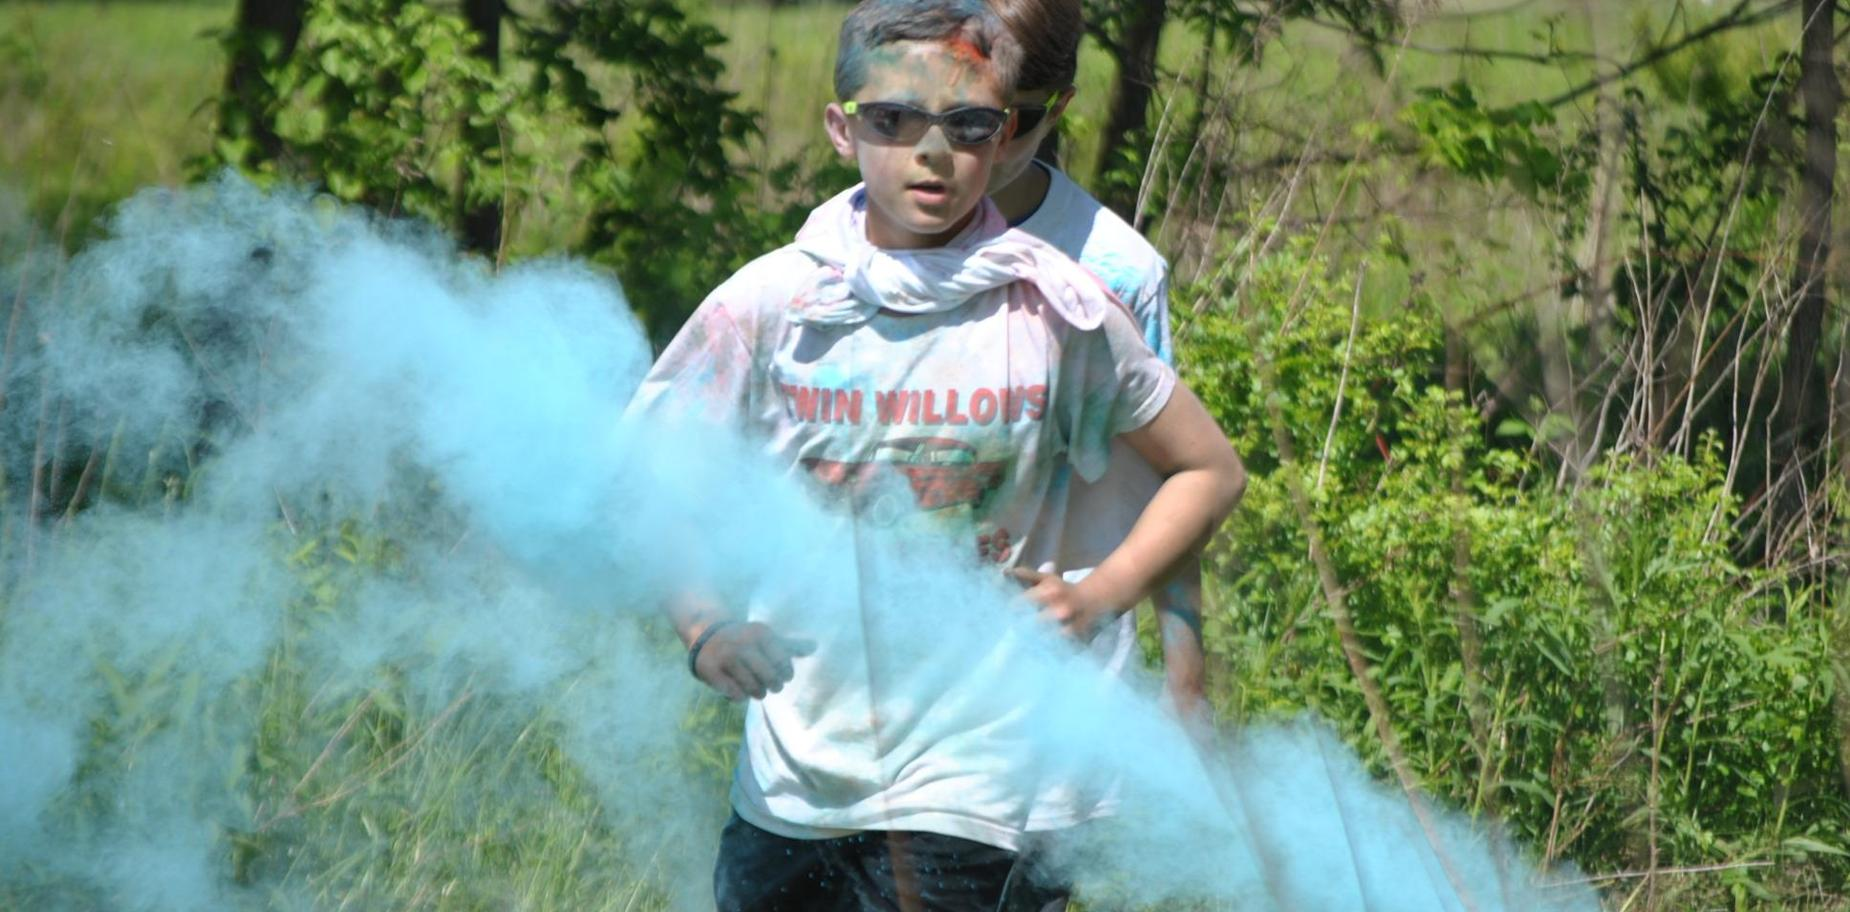 Boy at Color Run